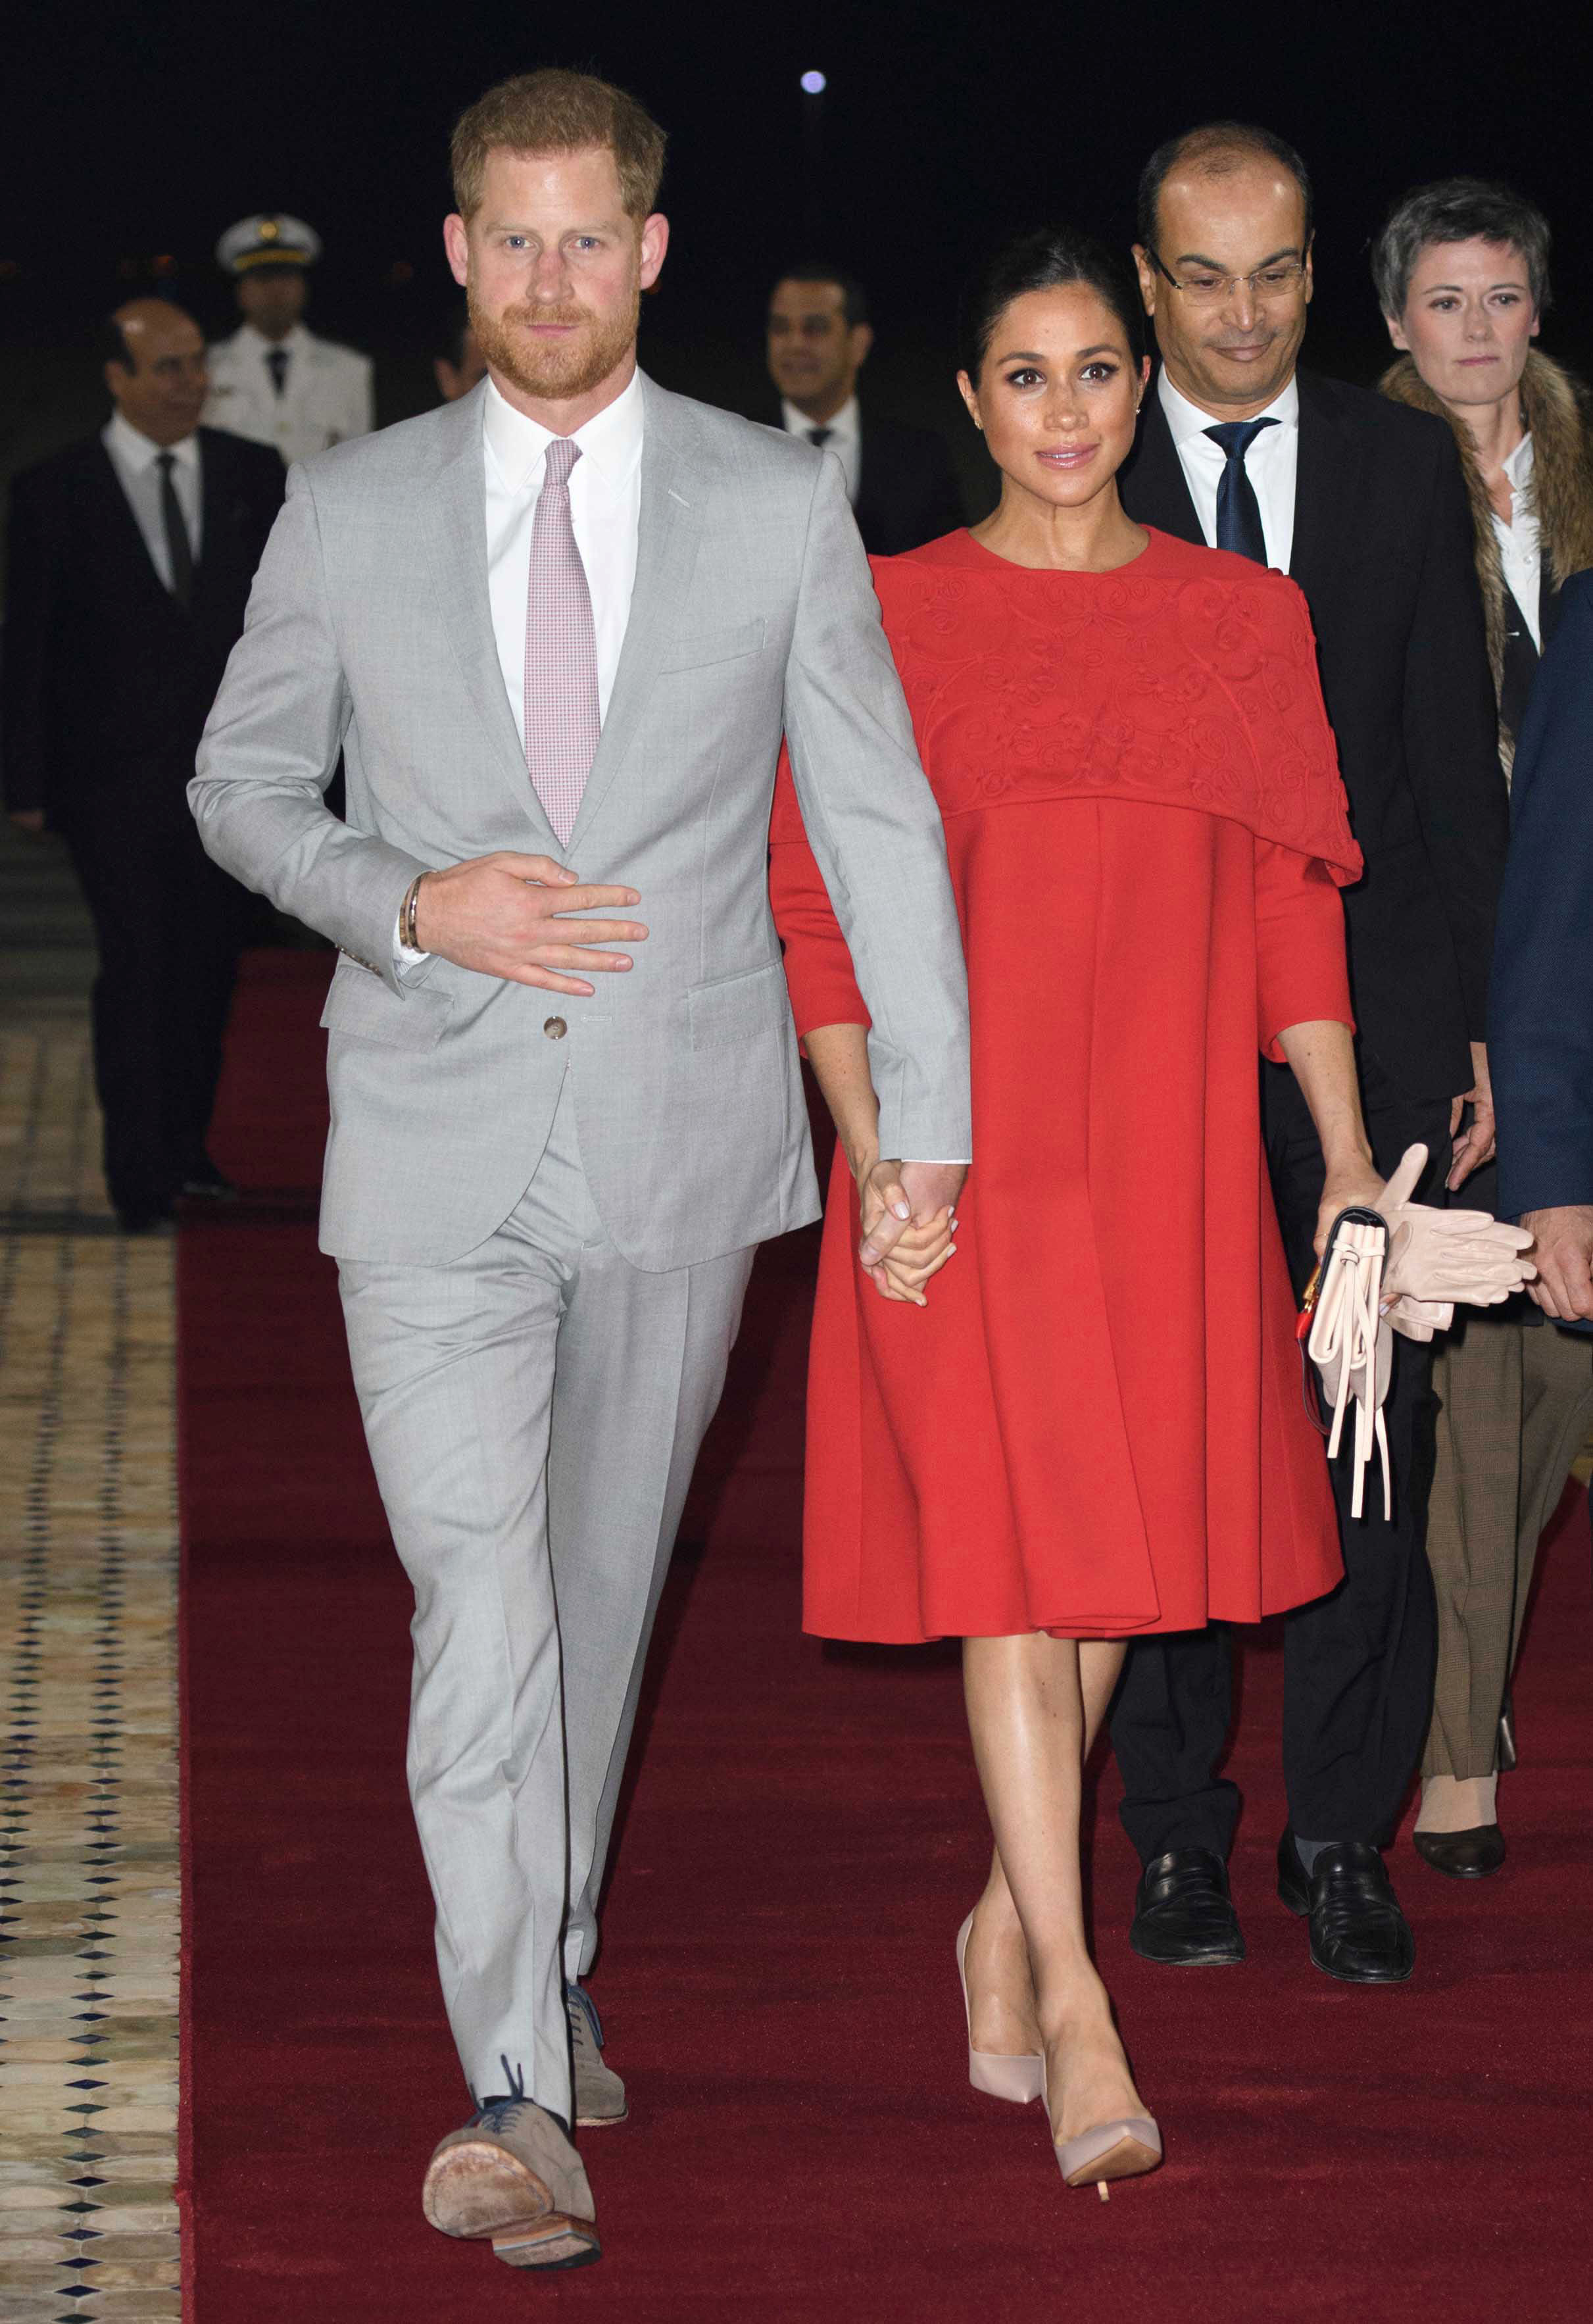 May 19th 2019 - Prince Harry The Duke of Sussex and Duchess Meghan of Sussex celebrate their first wedding anniversary. They were married at St. George's Chapel on the grounds of Windsor Castle on May 19th 2018. - File Photo by: zz/KGC-178/STAR MAX/IPx 2019 2/23/19 Prince Harry The Duke of Sussex and Meghan The Duchess of Sussex arrive at Casablanca Mohammed V International Airport as they begin their visit to the Kingdom of Morocco. (Casablanca, Morocco)